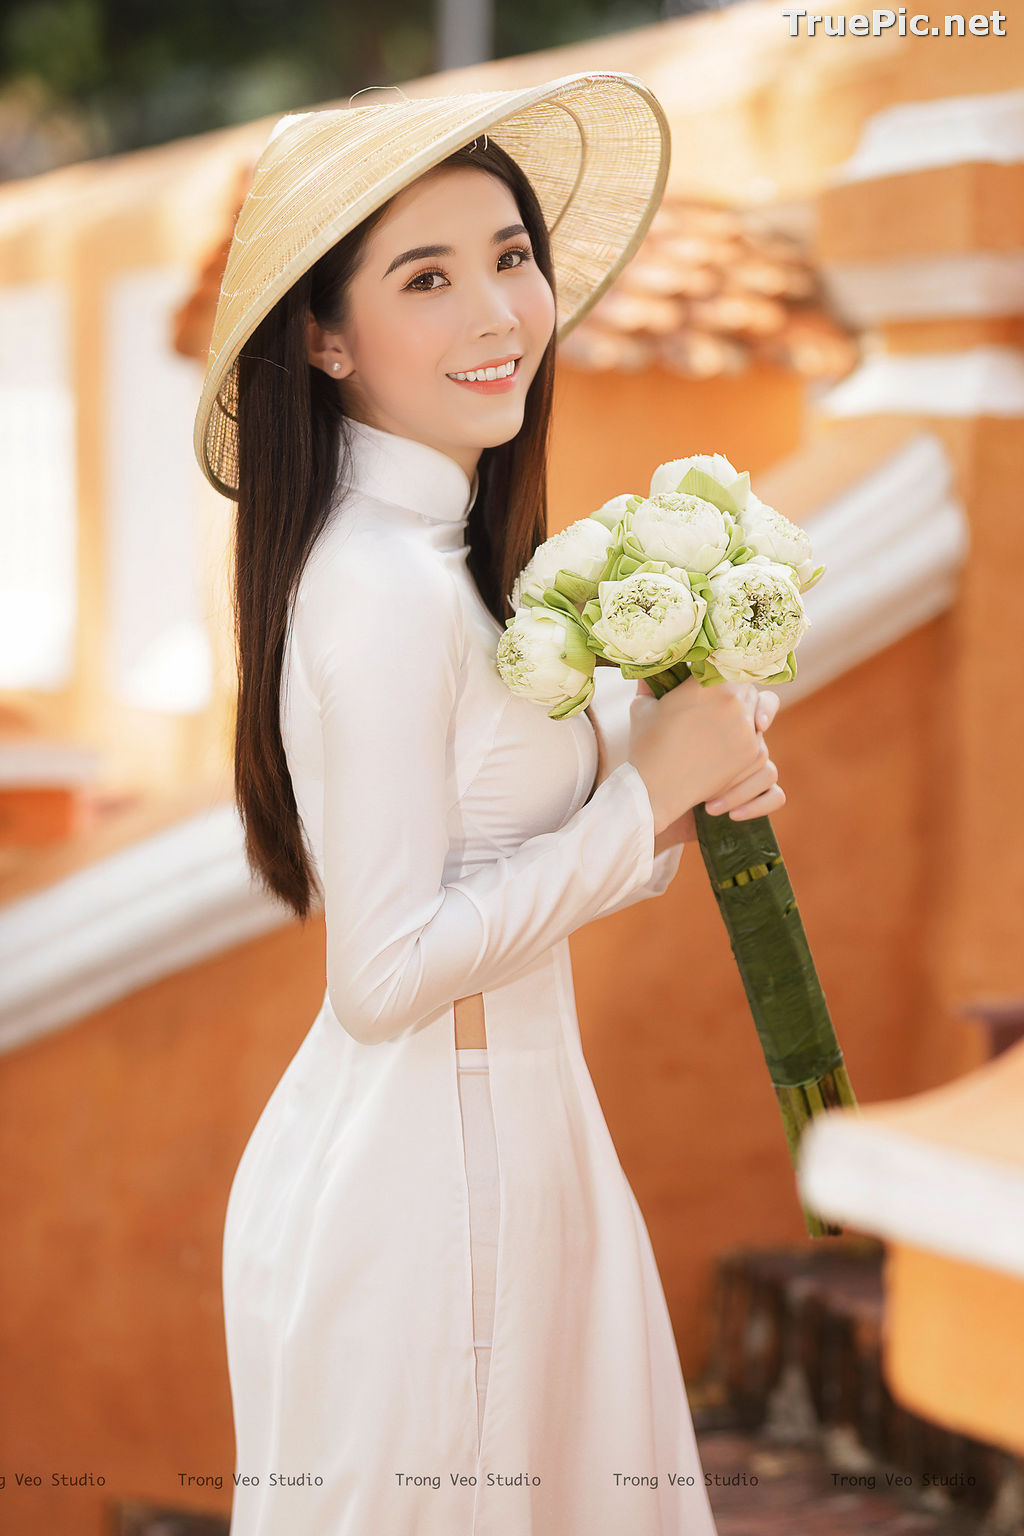 Image The Beauty of Vietnamese Girls with Traditional Dress (Ao Dai) #2 - TruePic.net - Picture-3